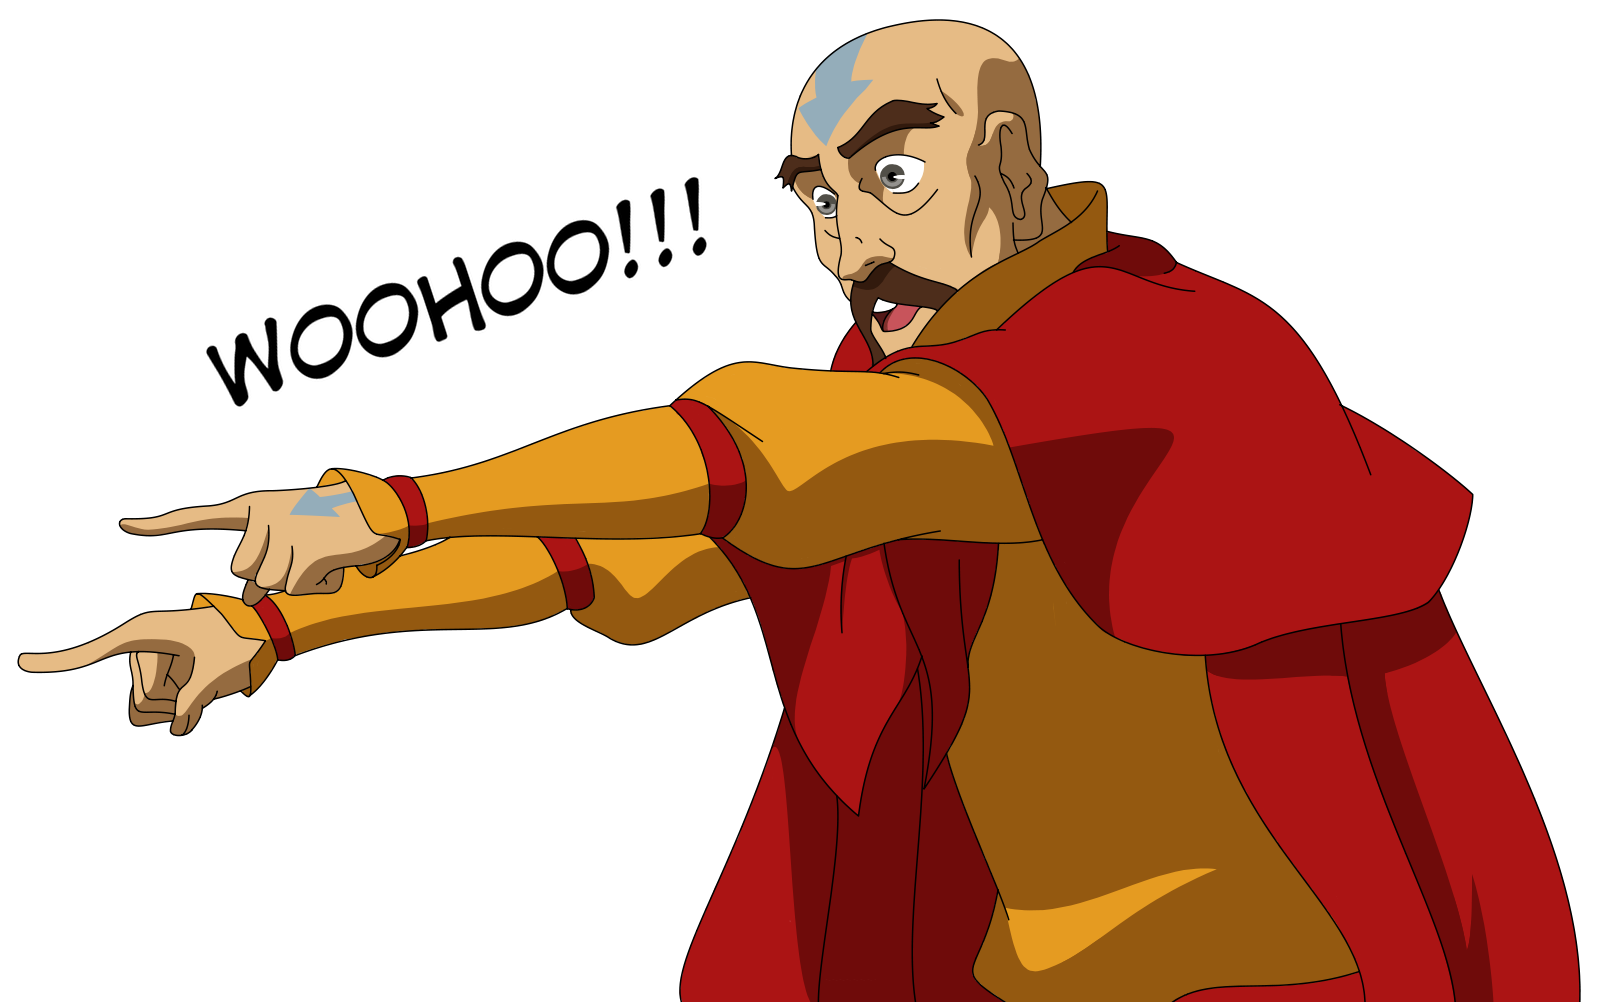 png avatar the last airbender